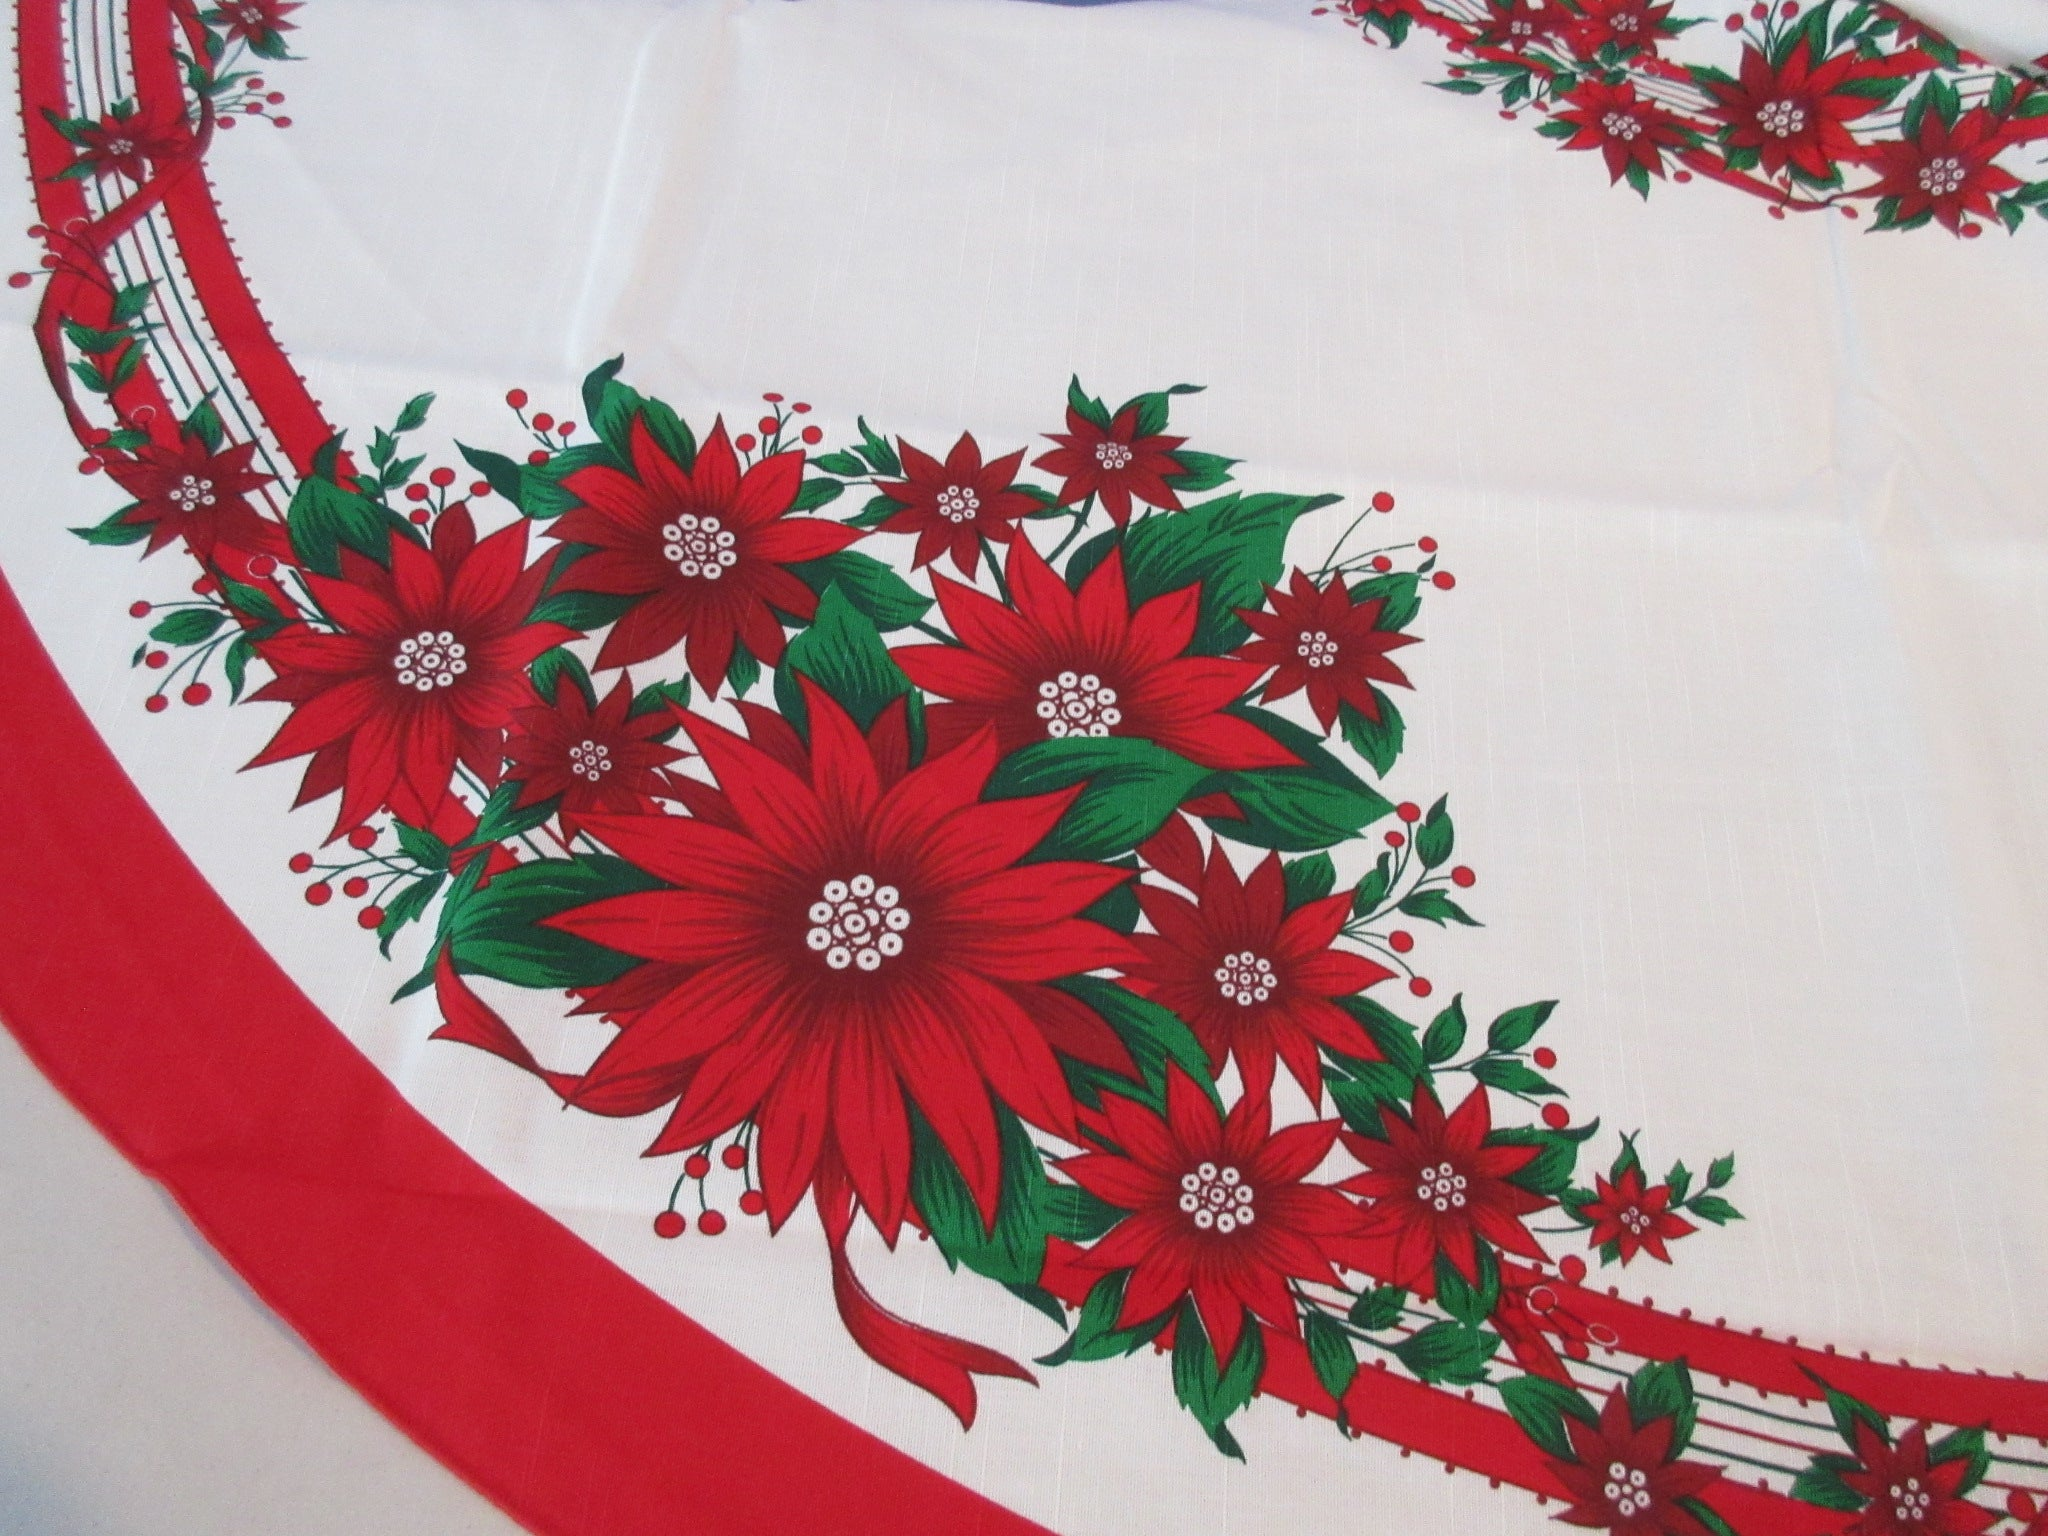 OVAL Christmas Poinsettias Ribbons NOS Novelty Vintage Printed Tablecloth (87 X 61)